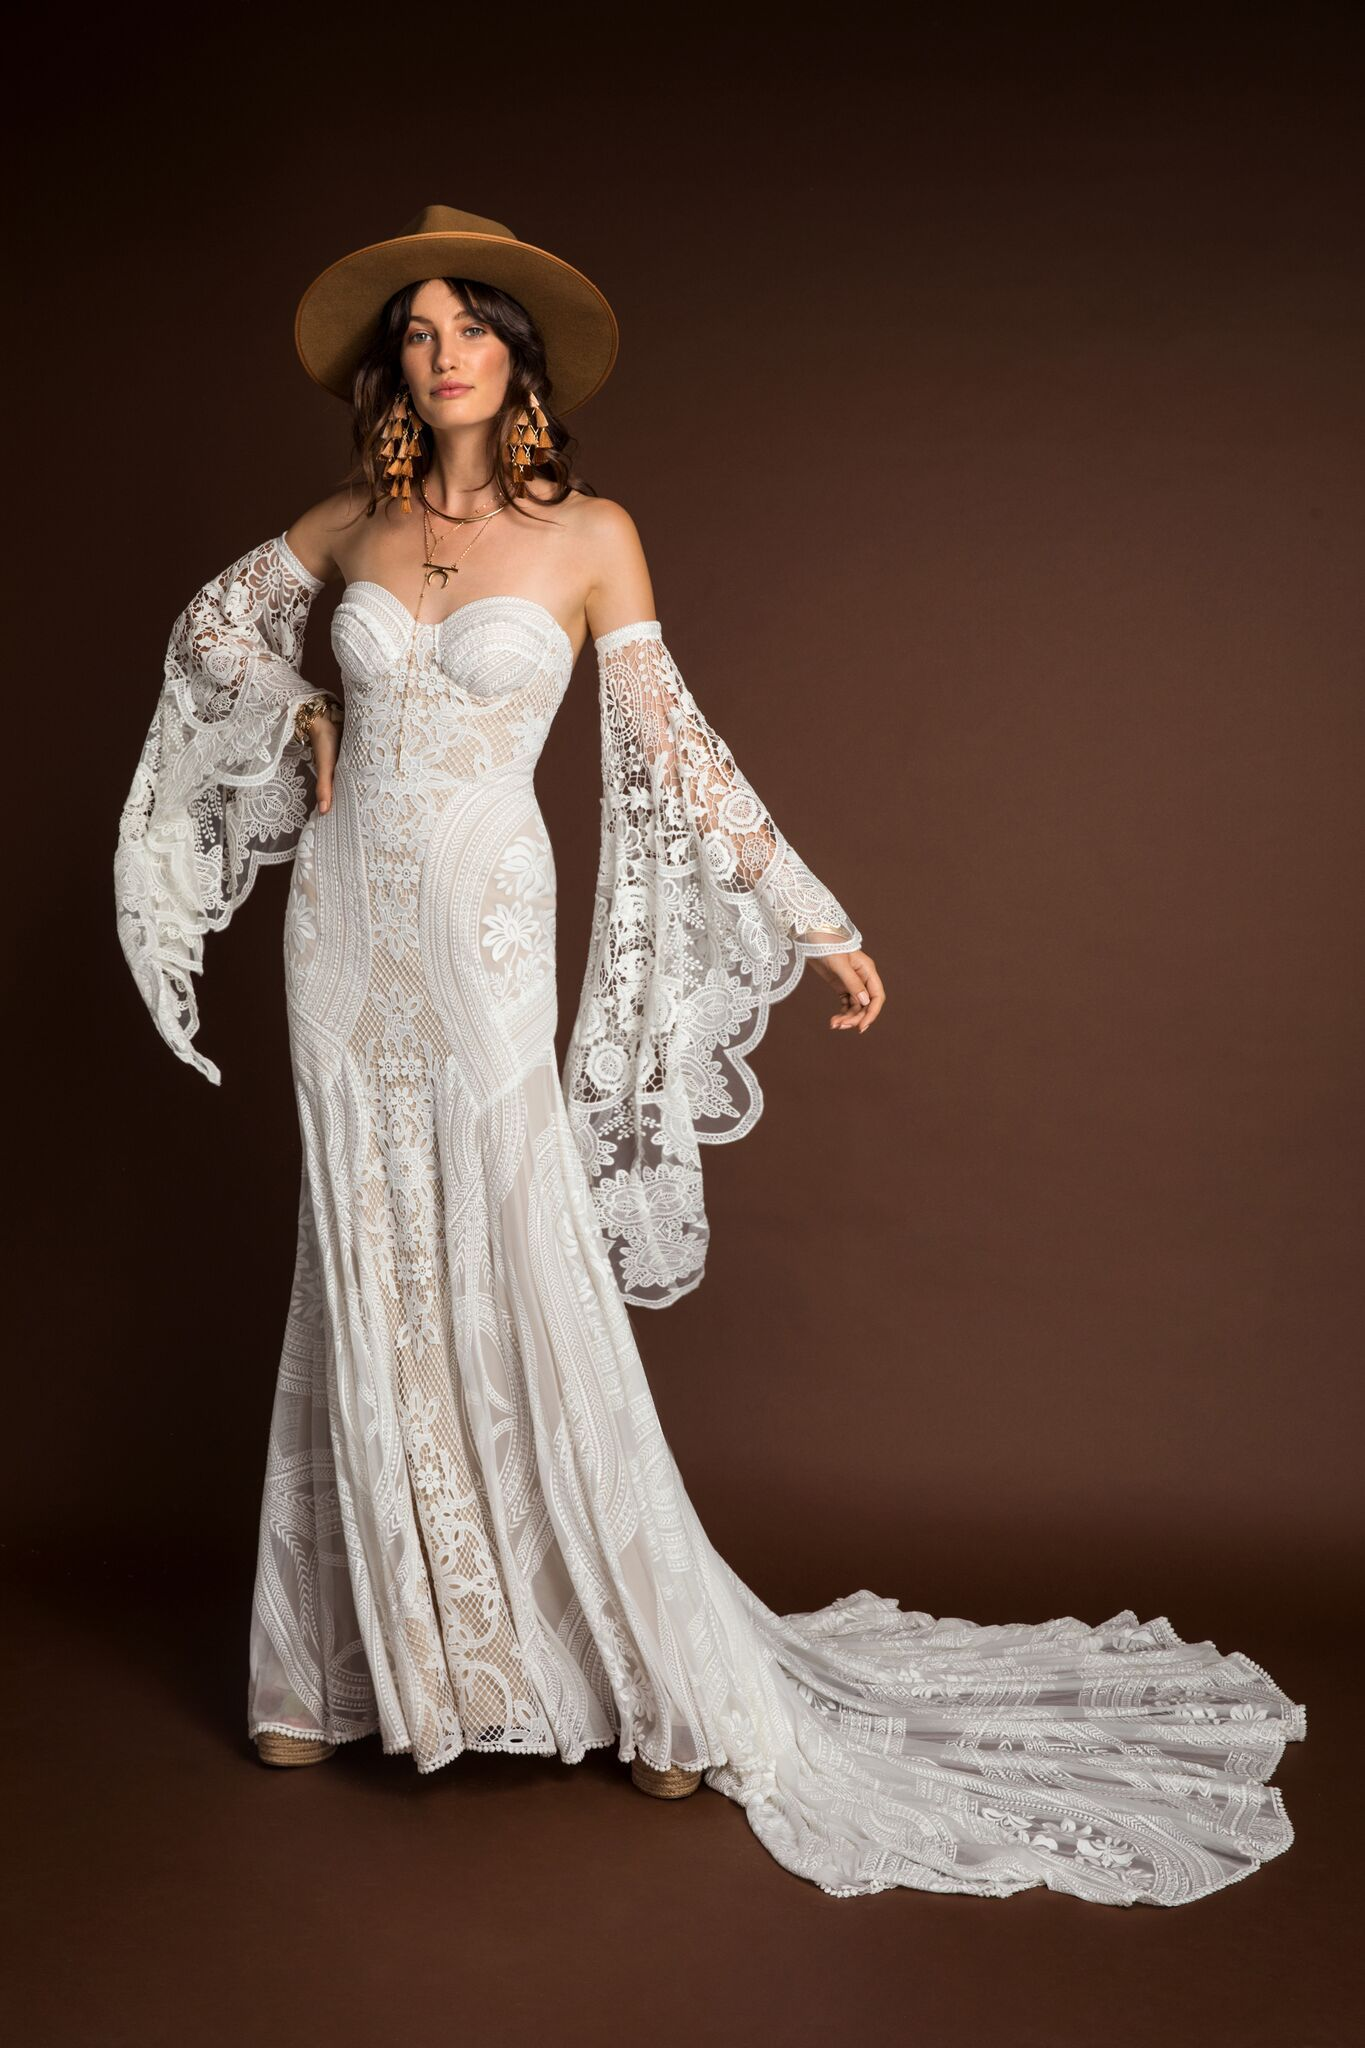 New Rue De Seine Wedding Dresses + Trunk Shows #bridalshops